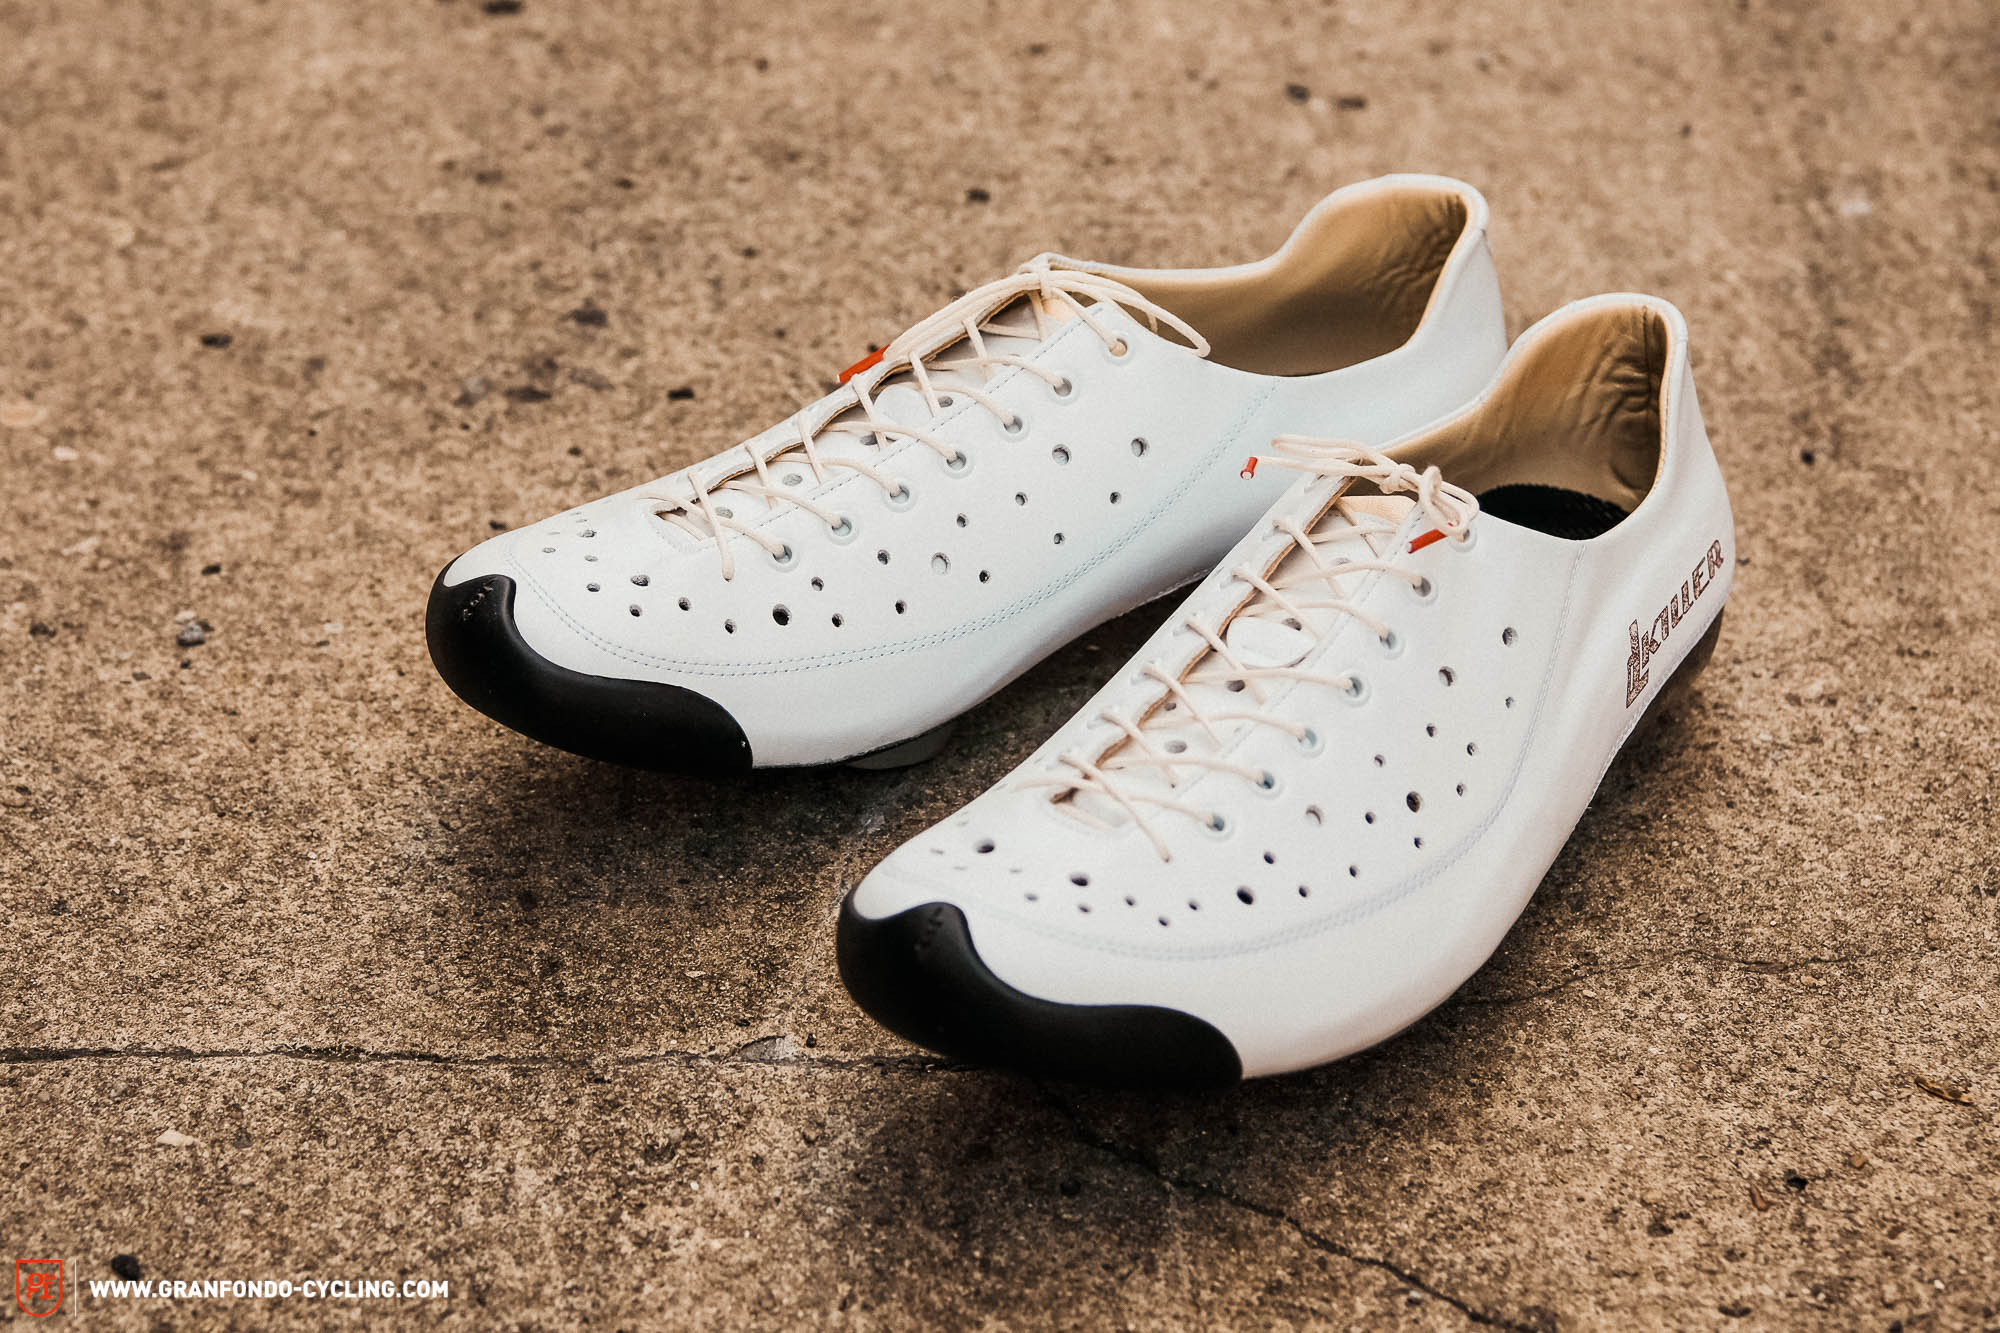 DL Killer Vito Leather road shoes in